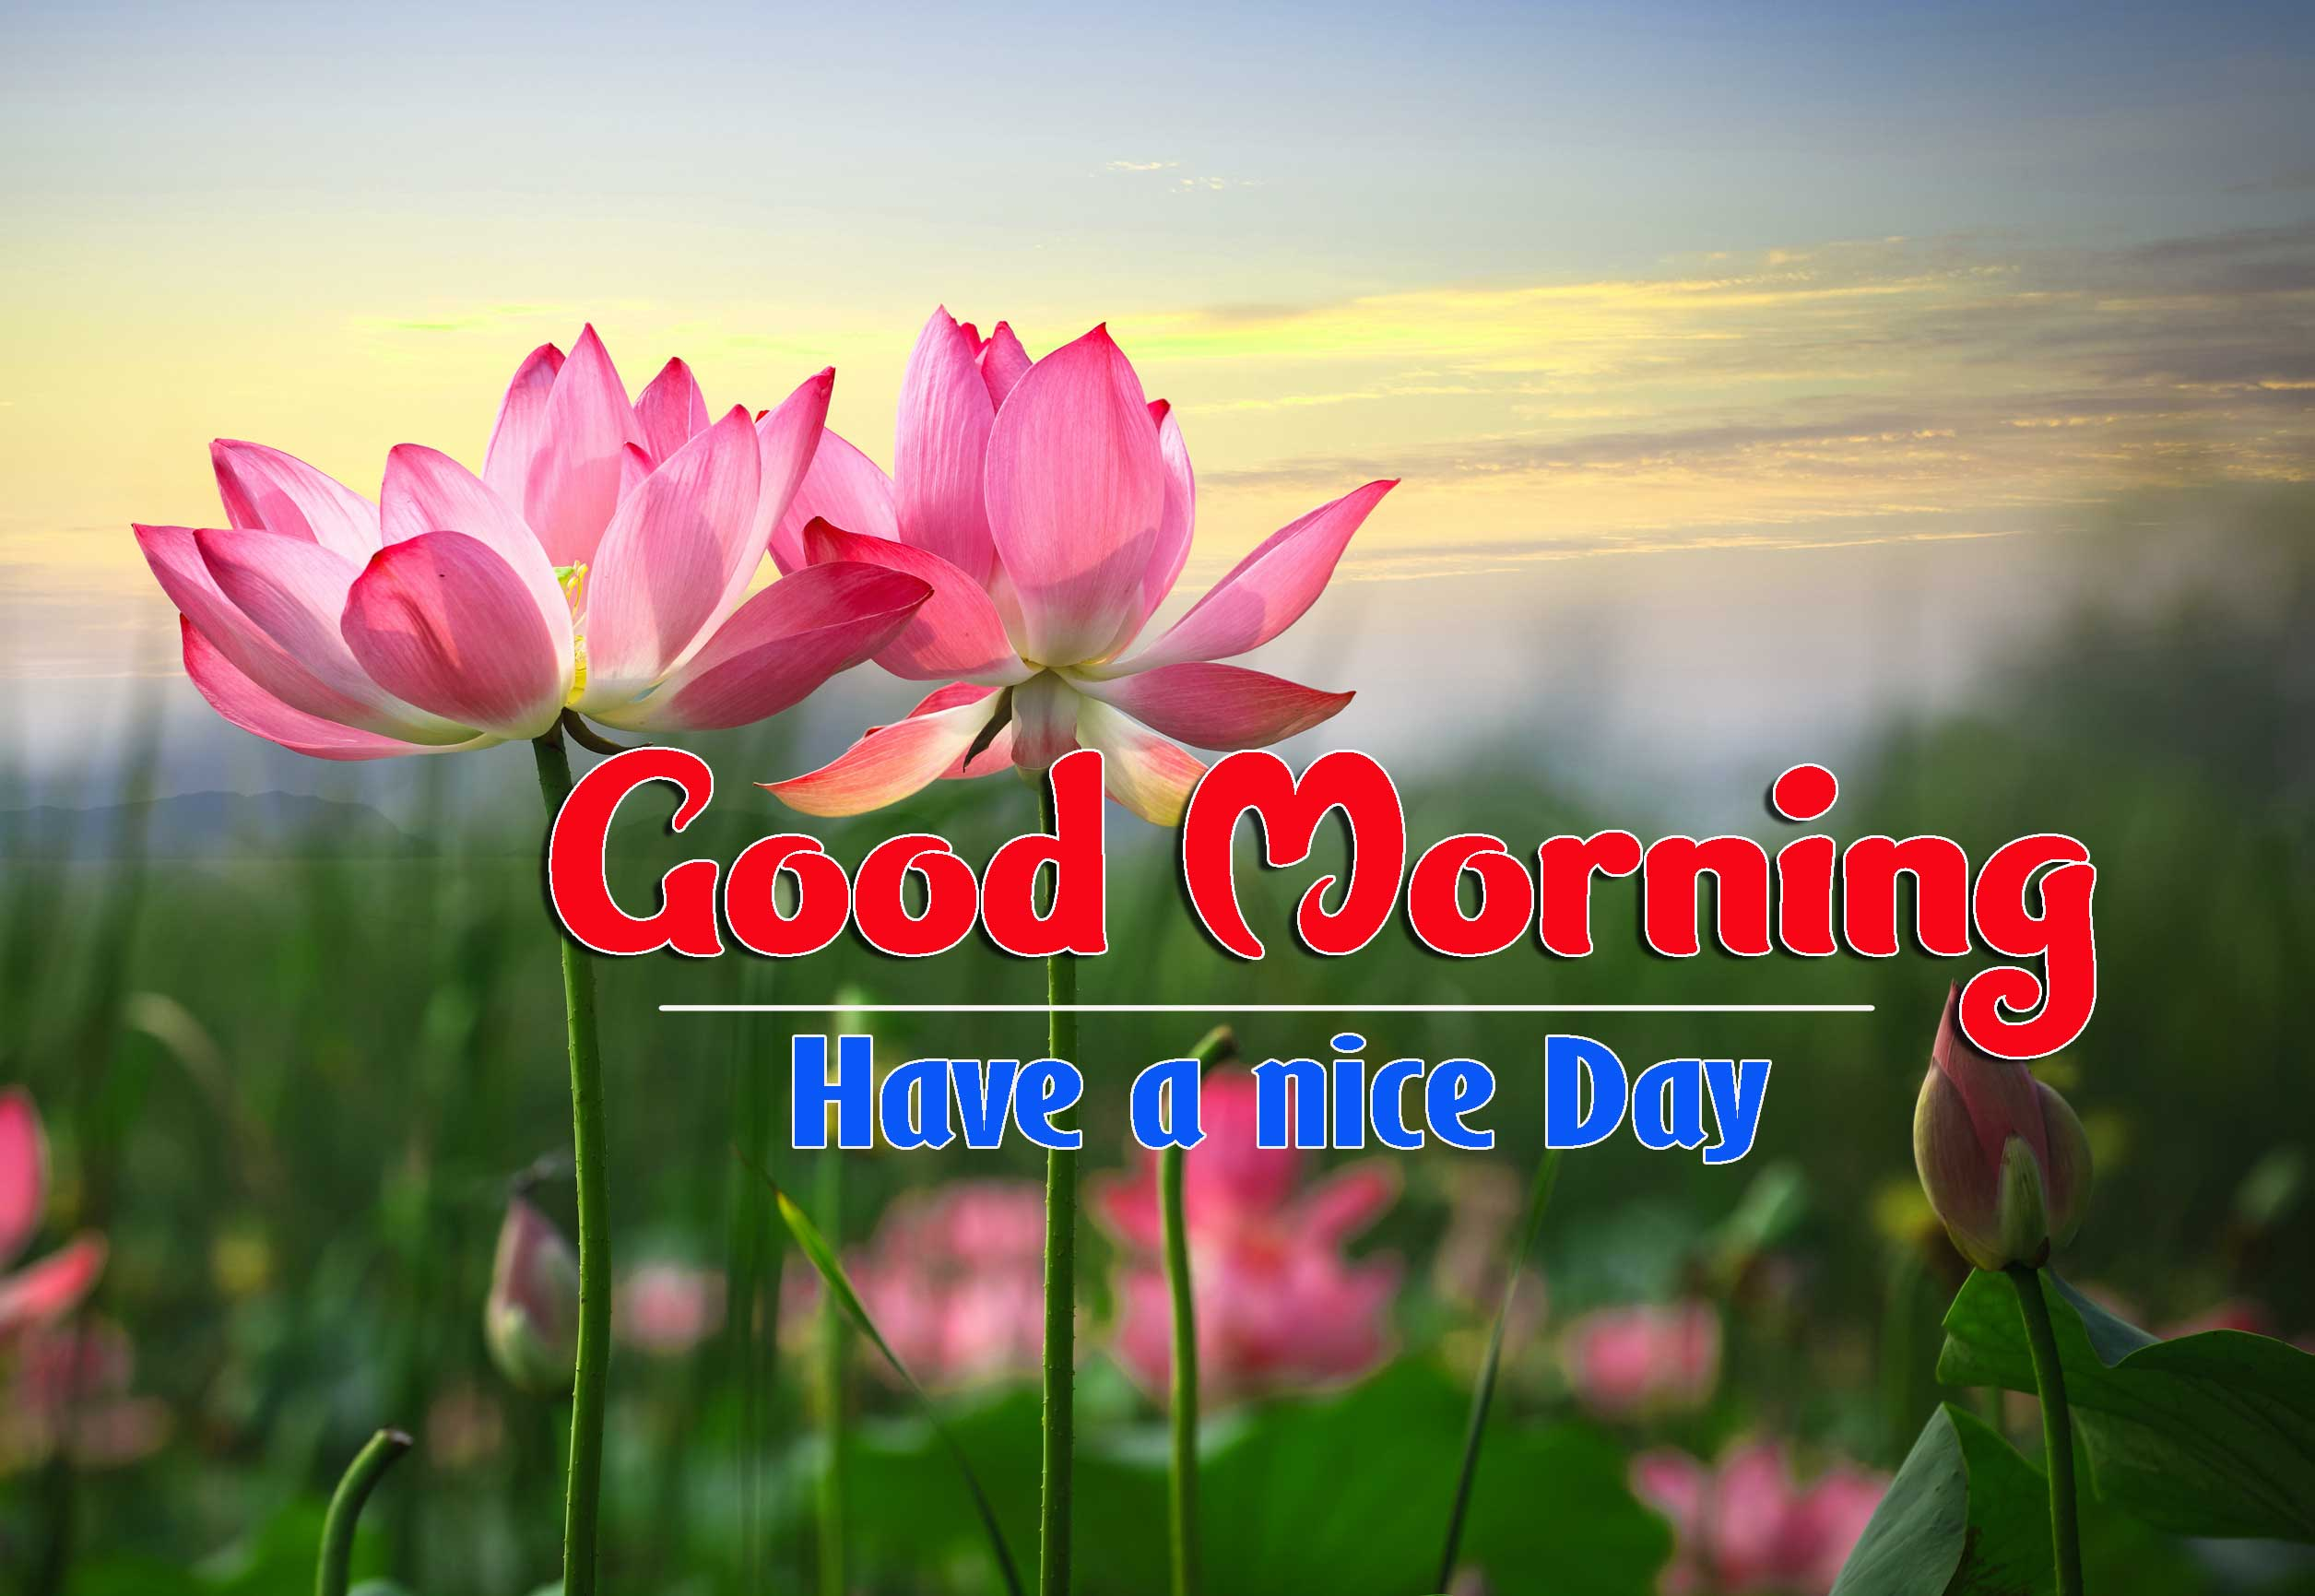 Good Morning Images HD 40